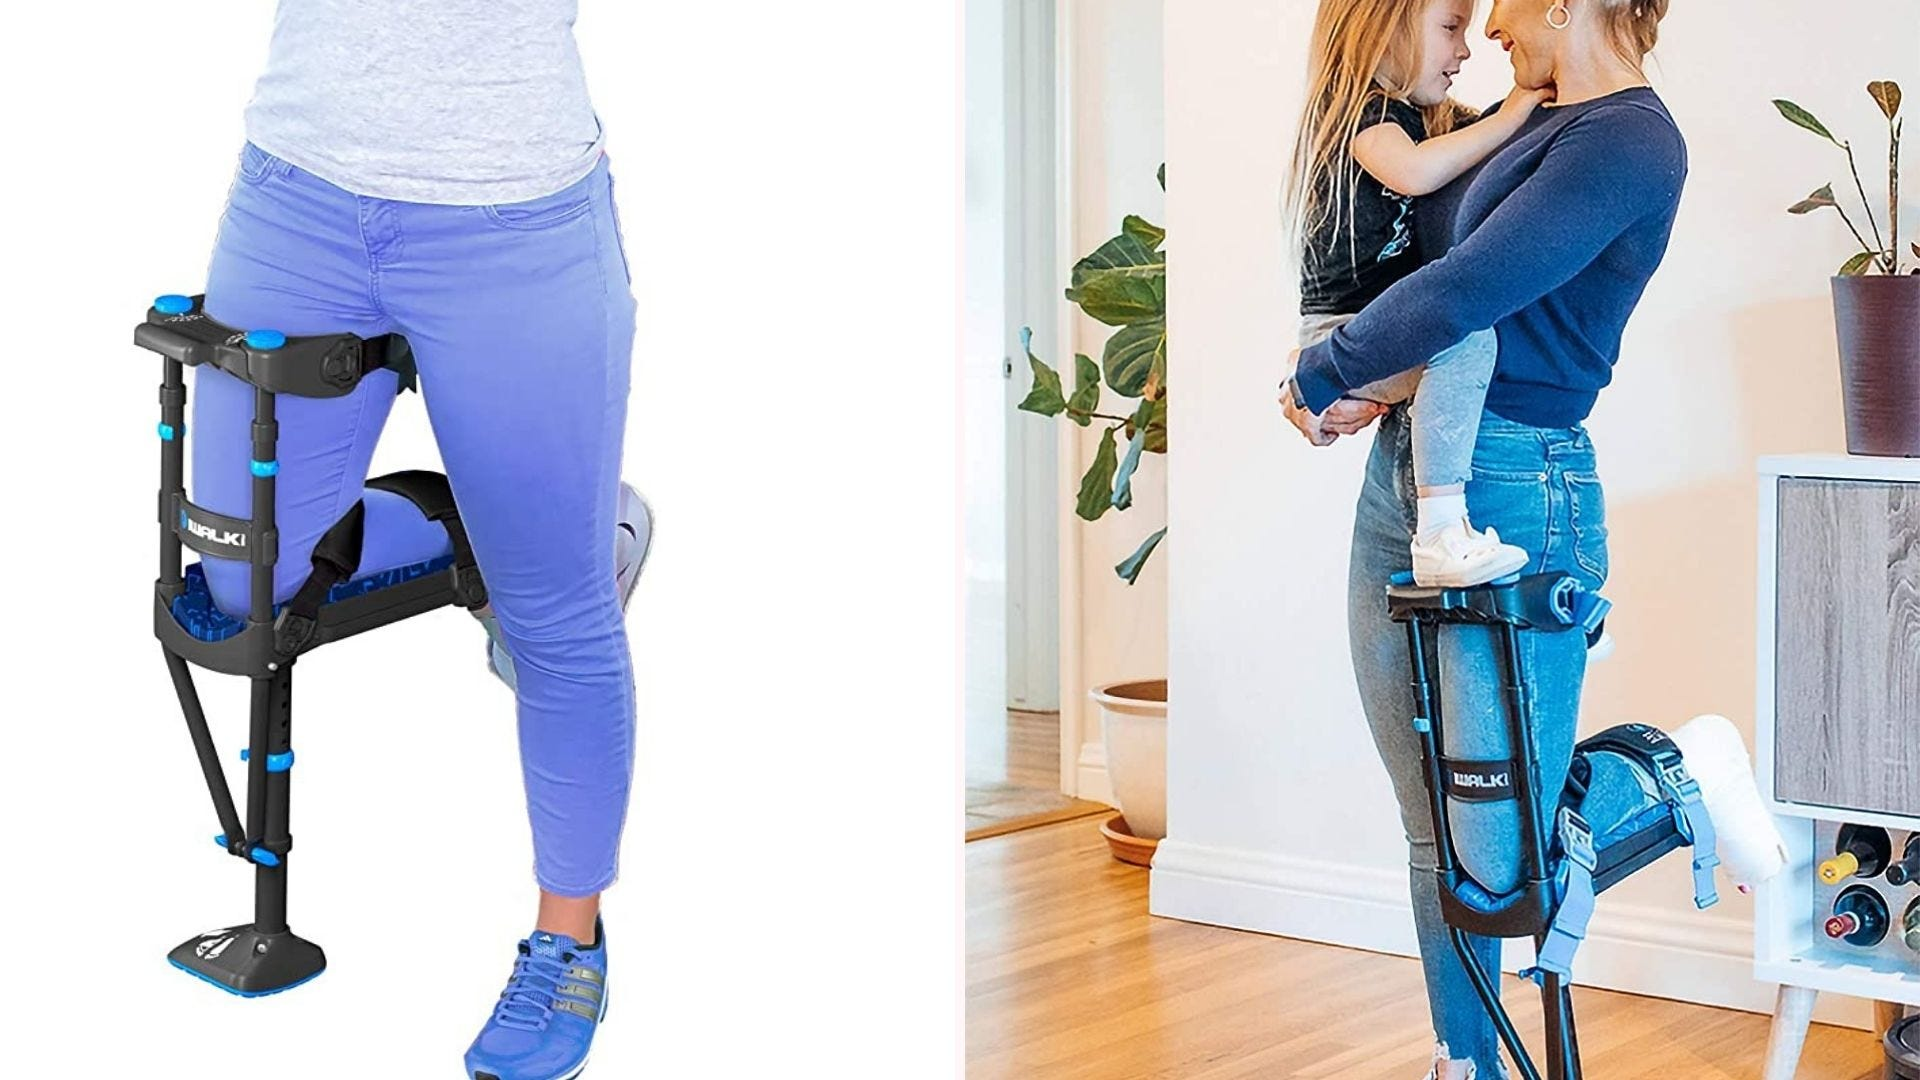 a woman wearing/kneeling on a hands-free crutch on one leg while she holds her child in her arms